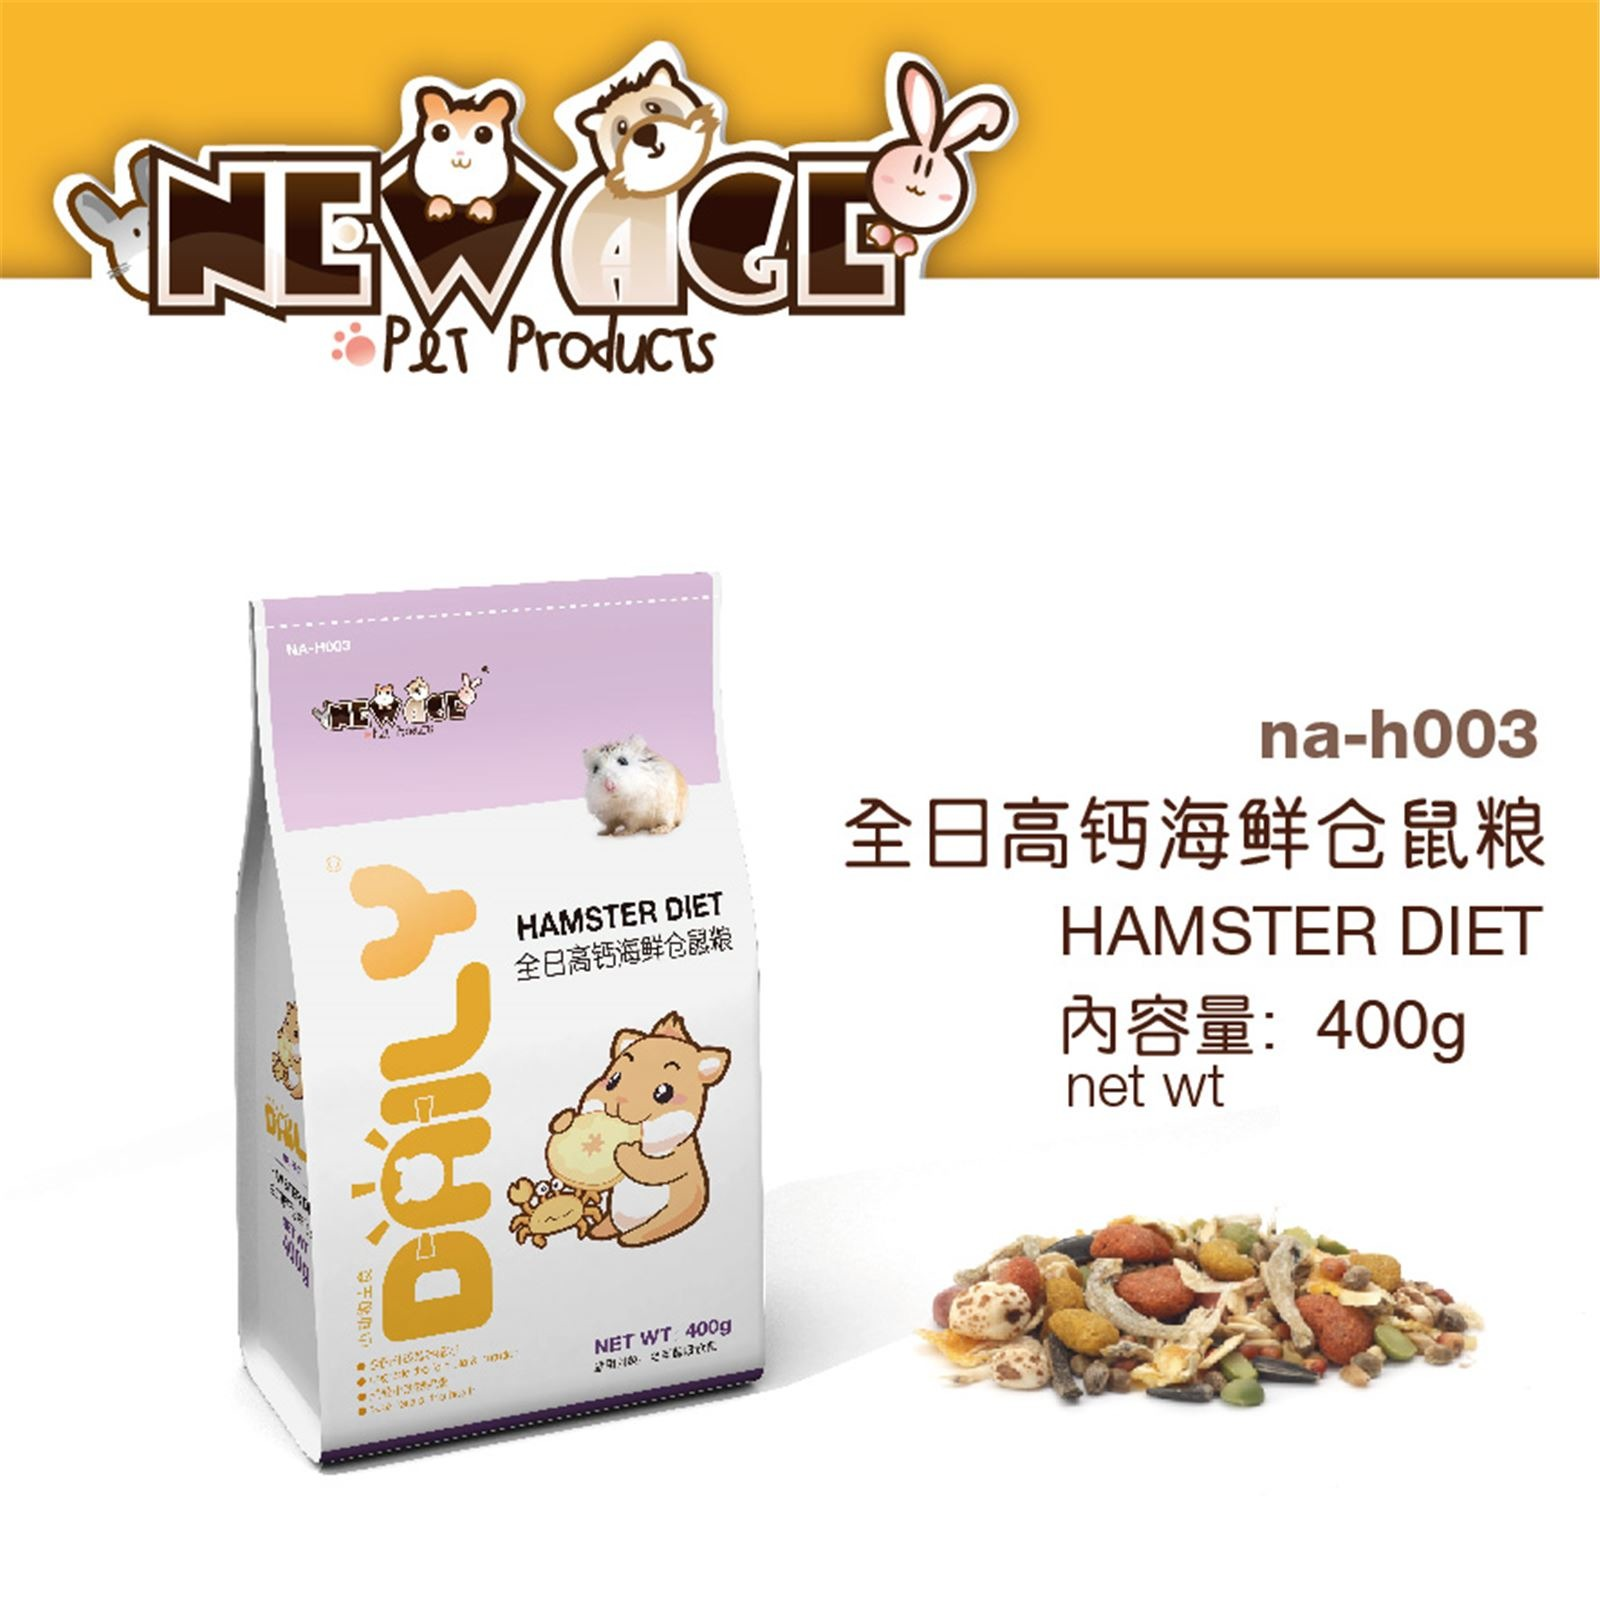 Edai New Age Hamster Daily Diet Seafood